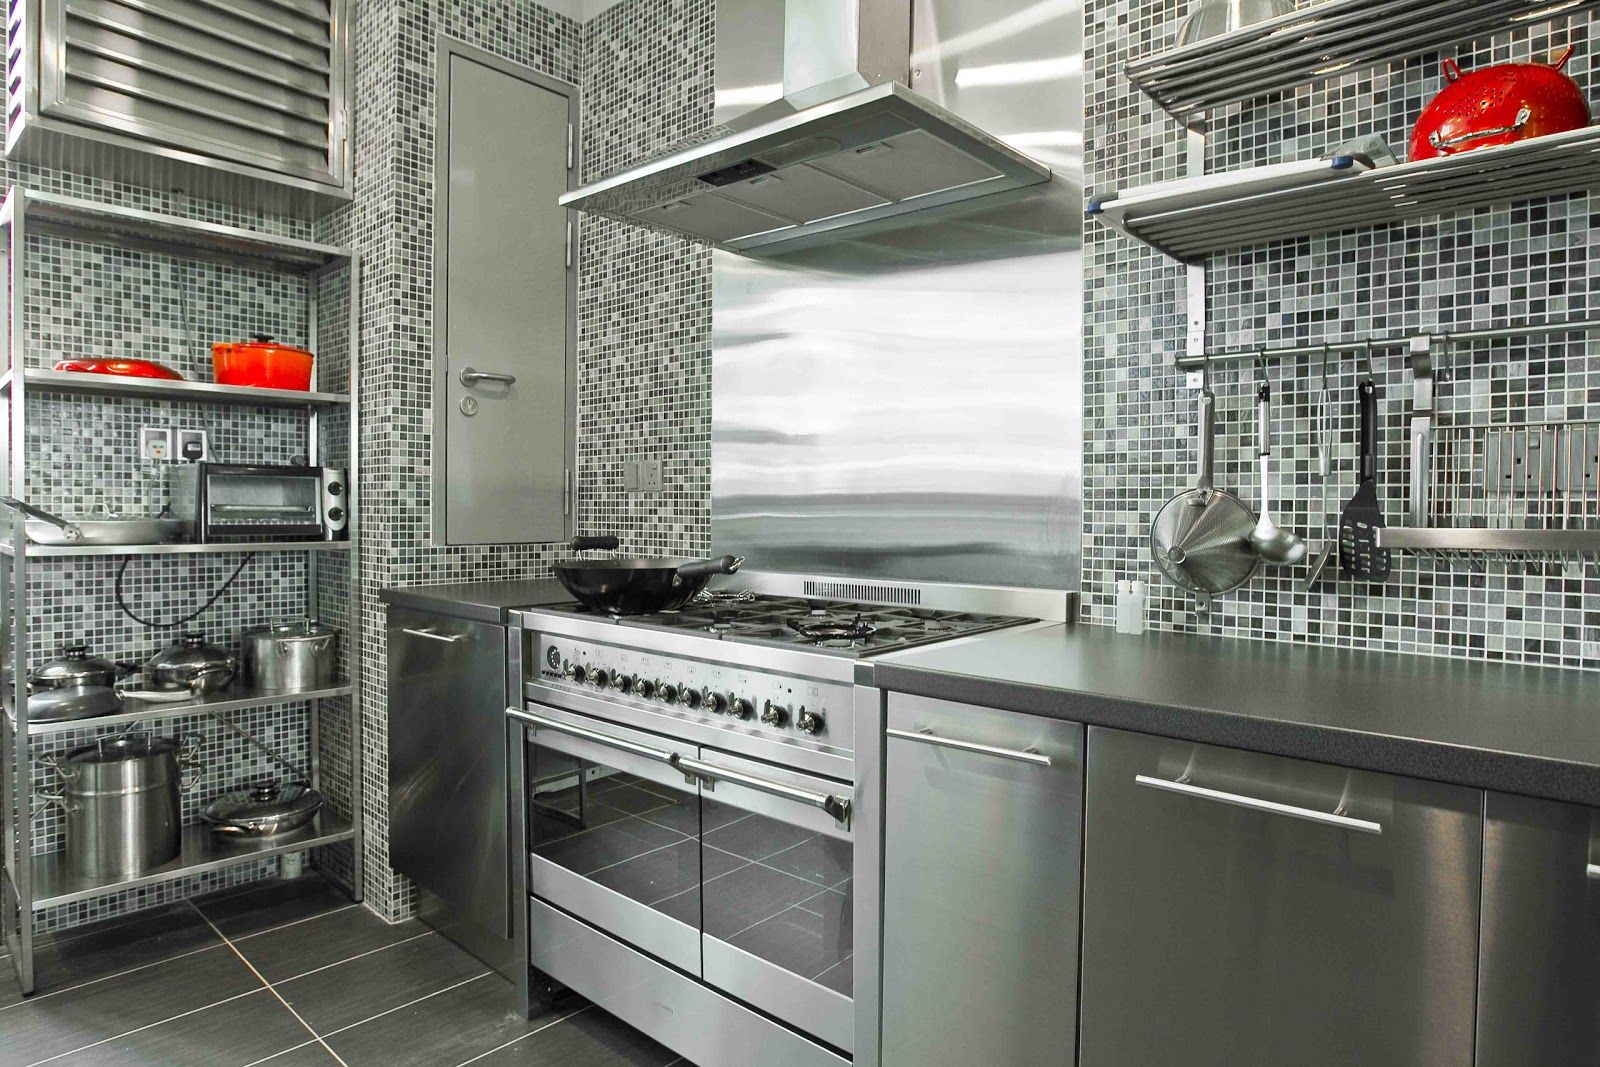 Brushed Metal Kitchen Cabinets Stainless Steel Kitchen Cabinets Steel Kitchen Cabinets Metal Kitchen Cabinets